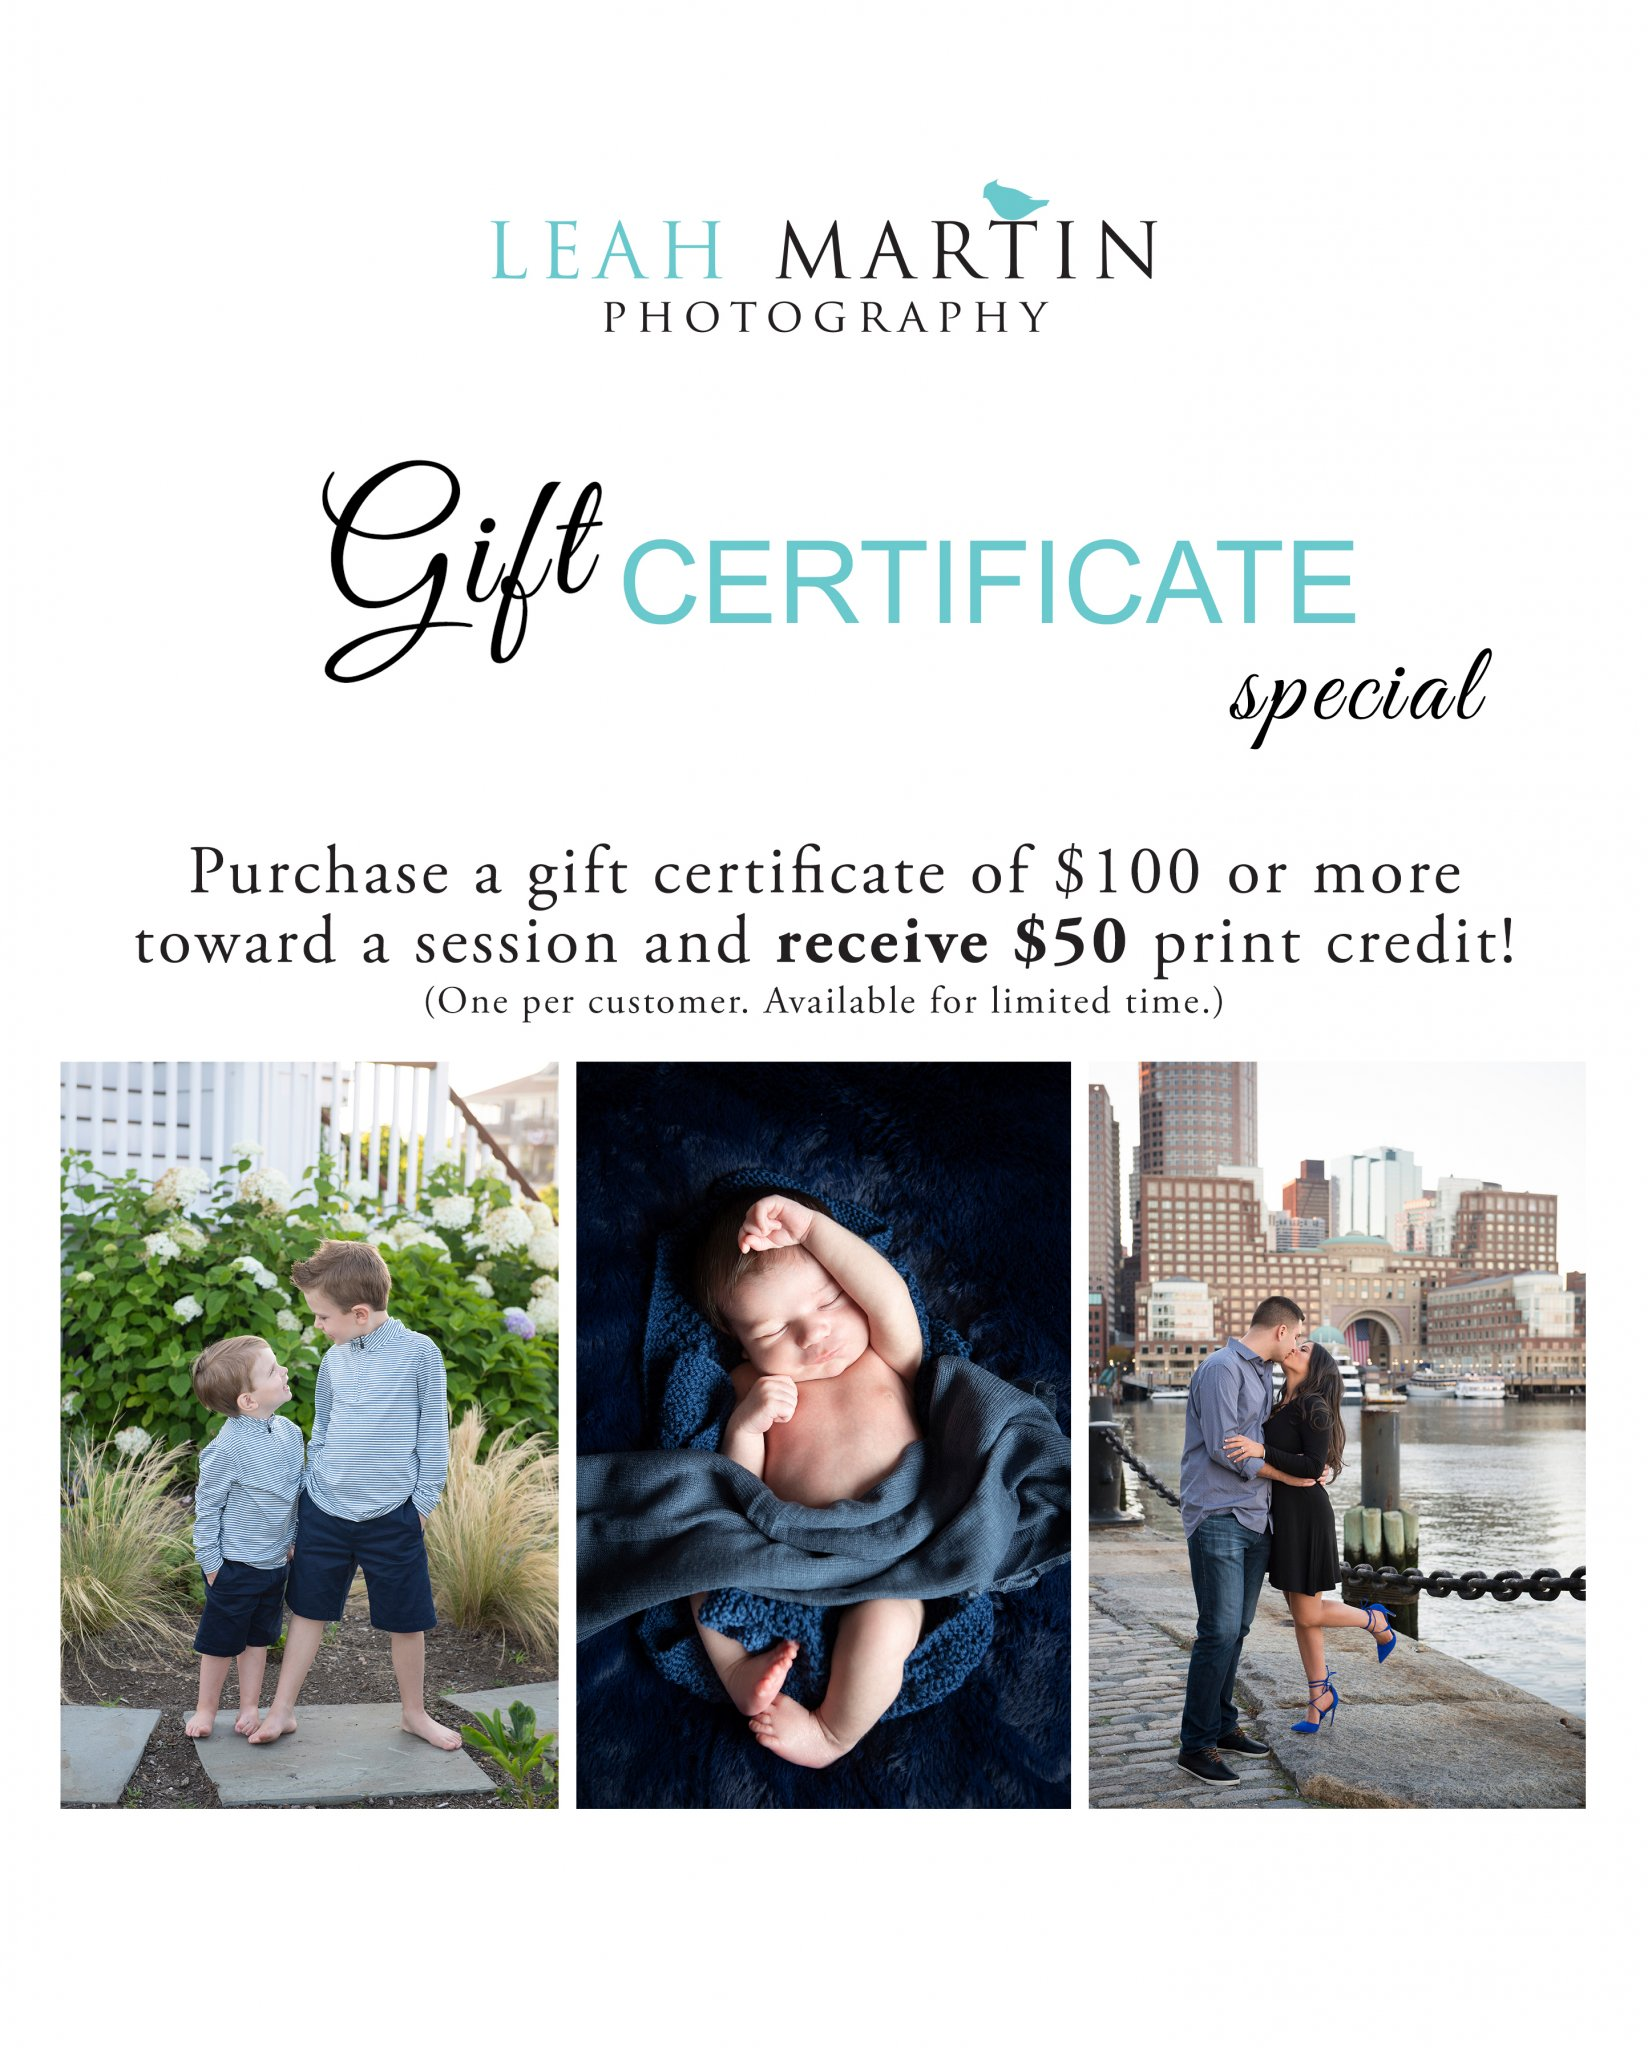 Gift Certificate Promotion